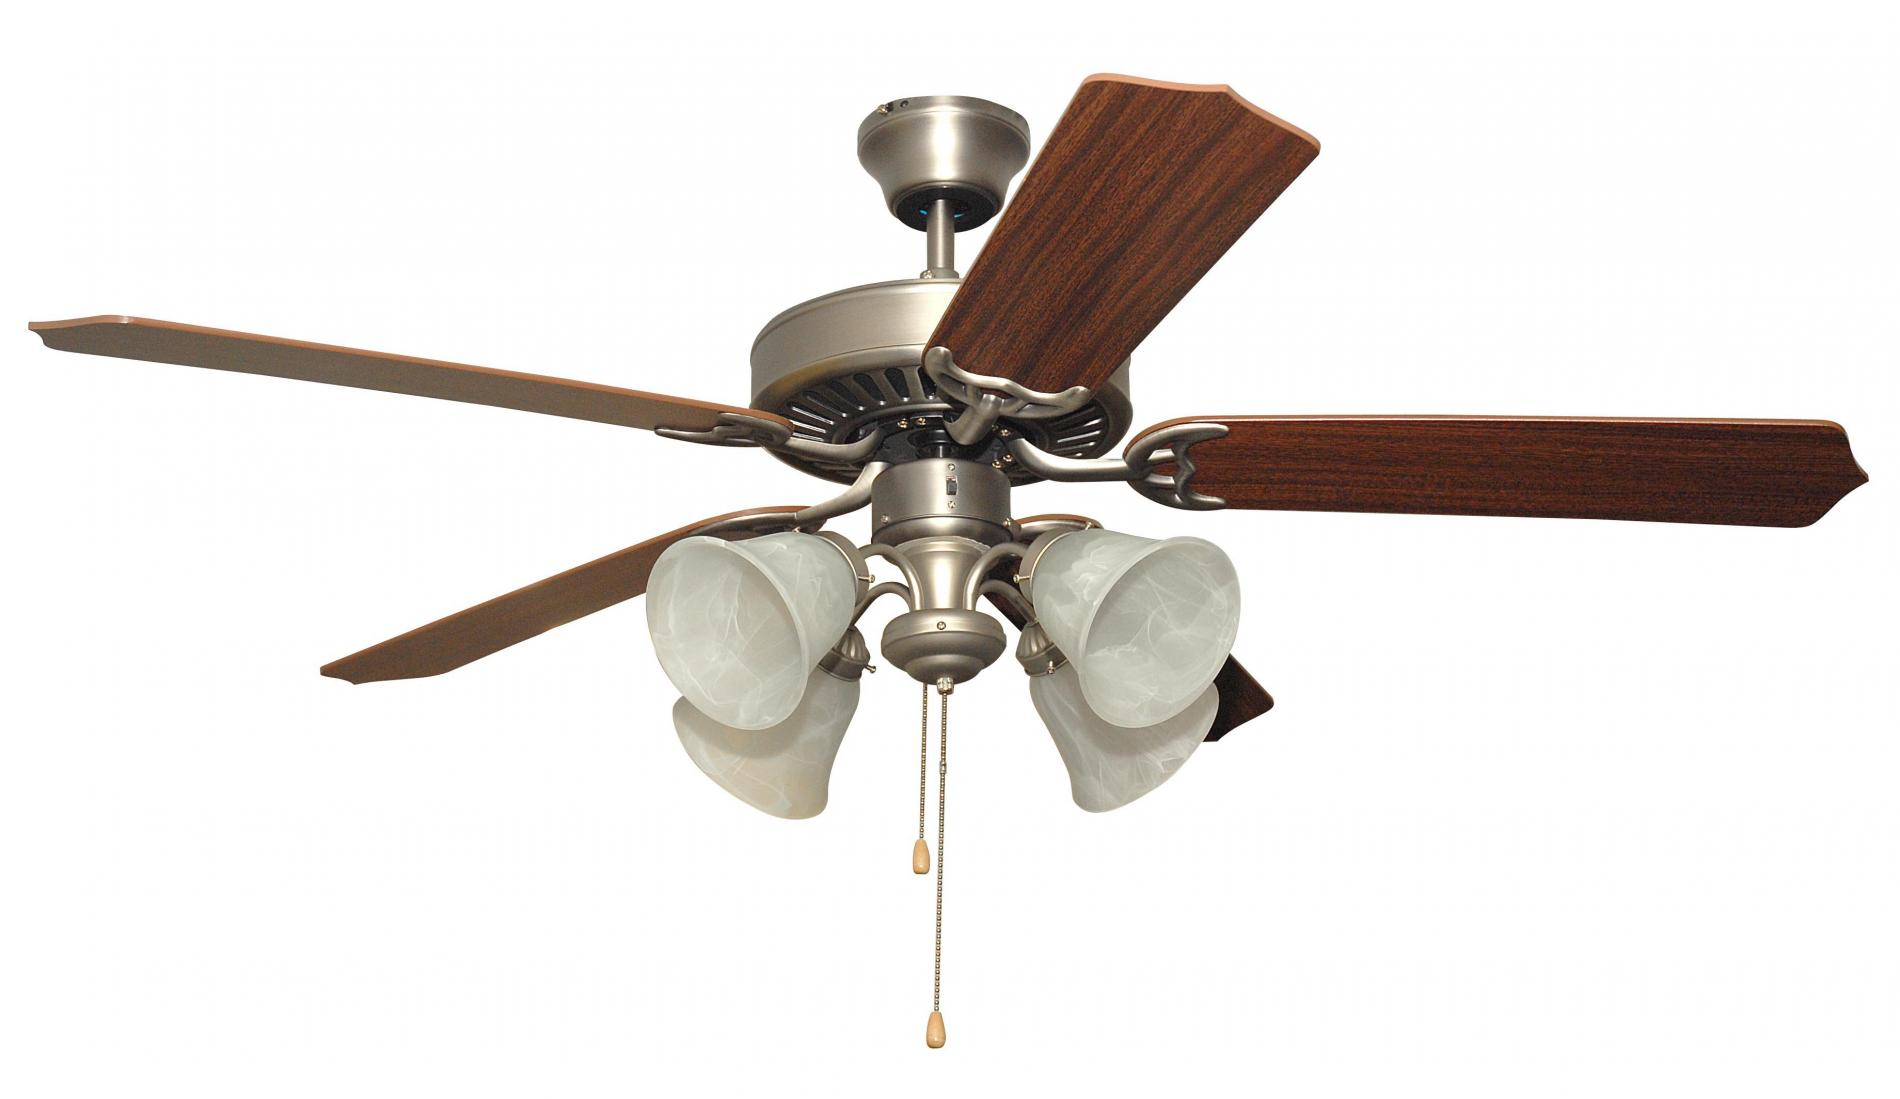 Ceiling Fans With Lights : Ceiling fan light ways to up your space